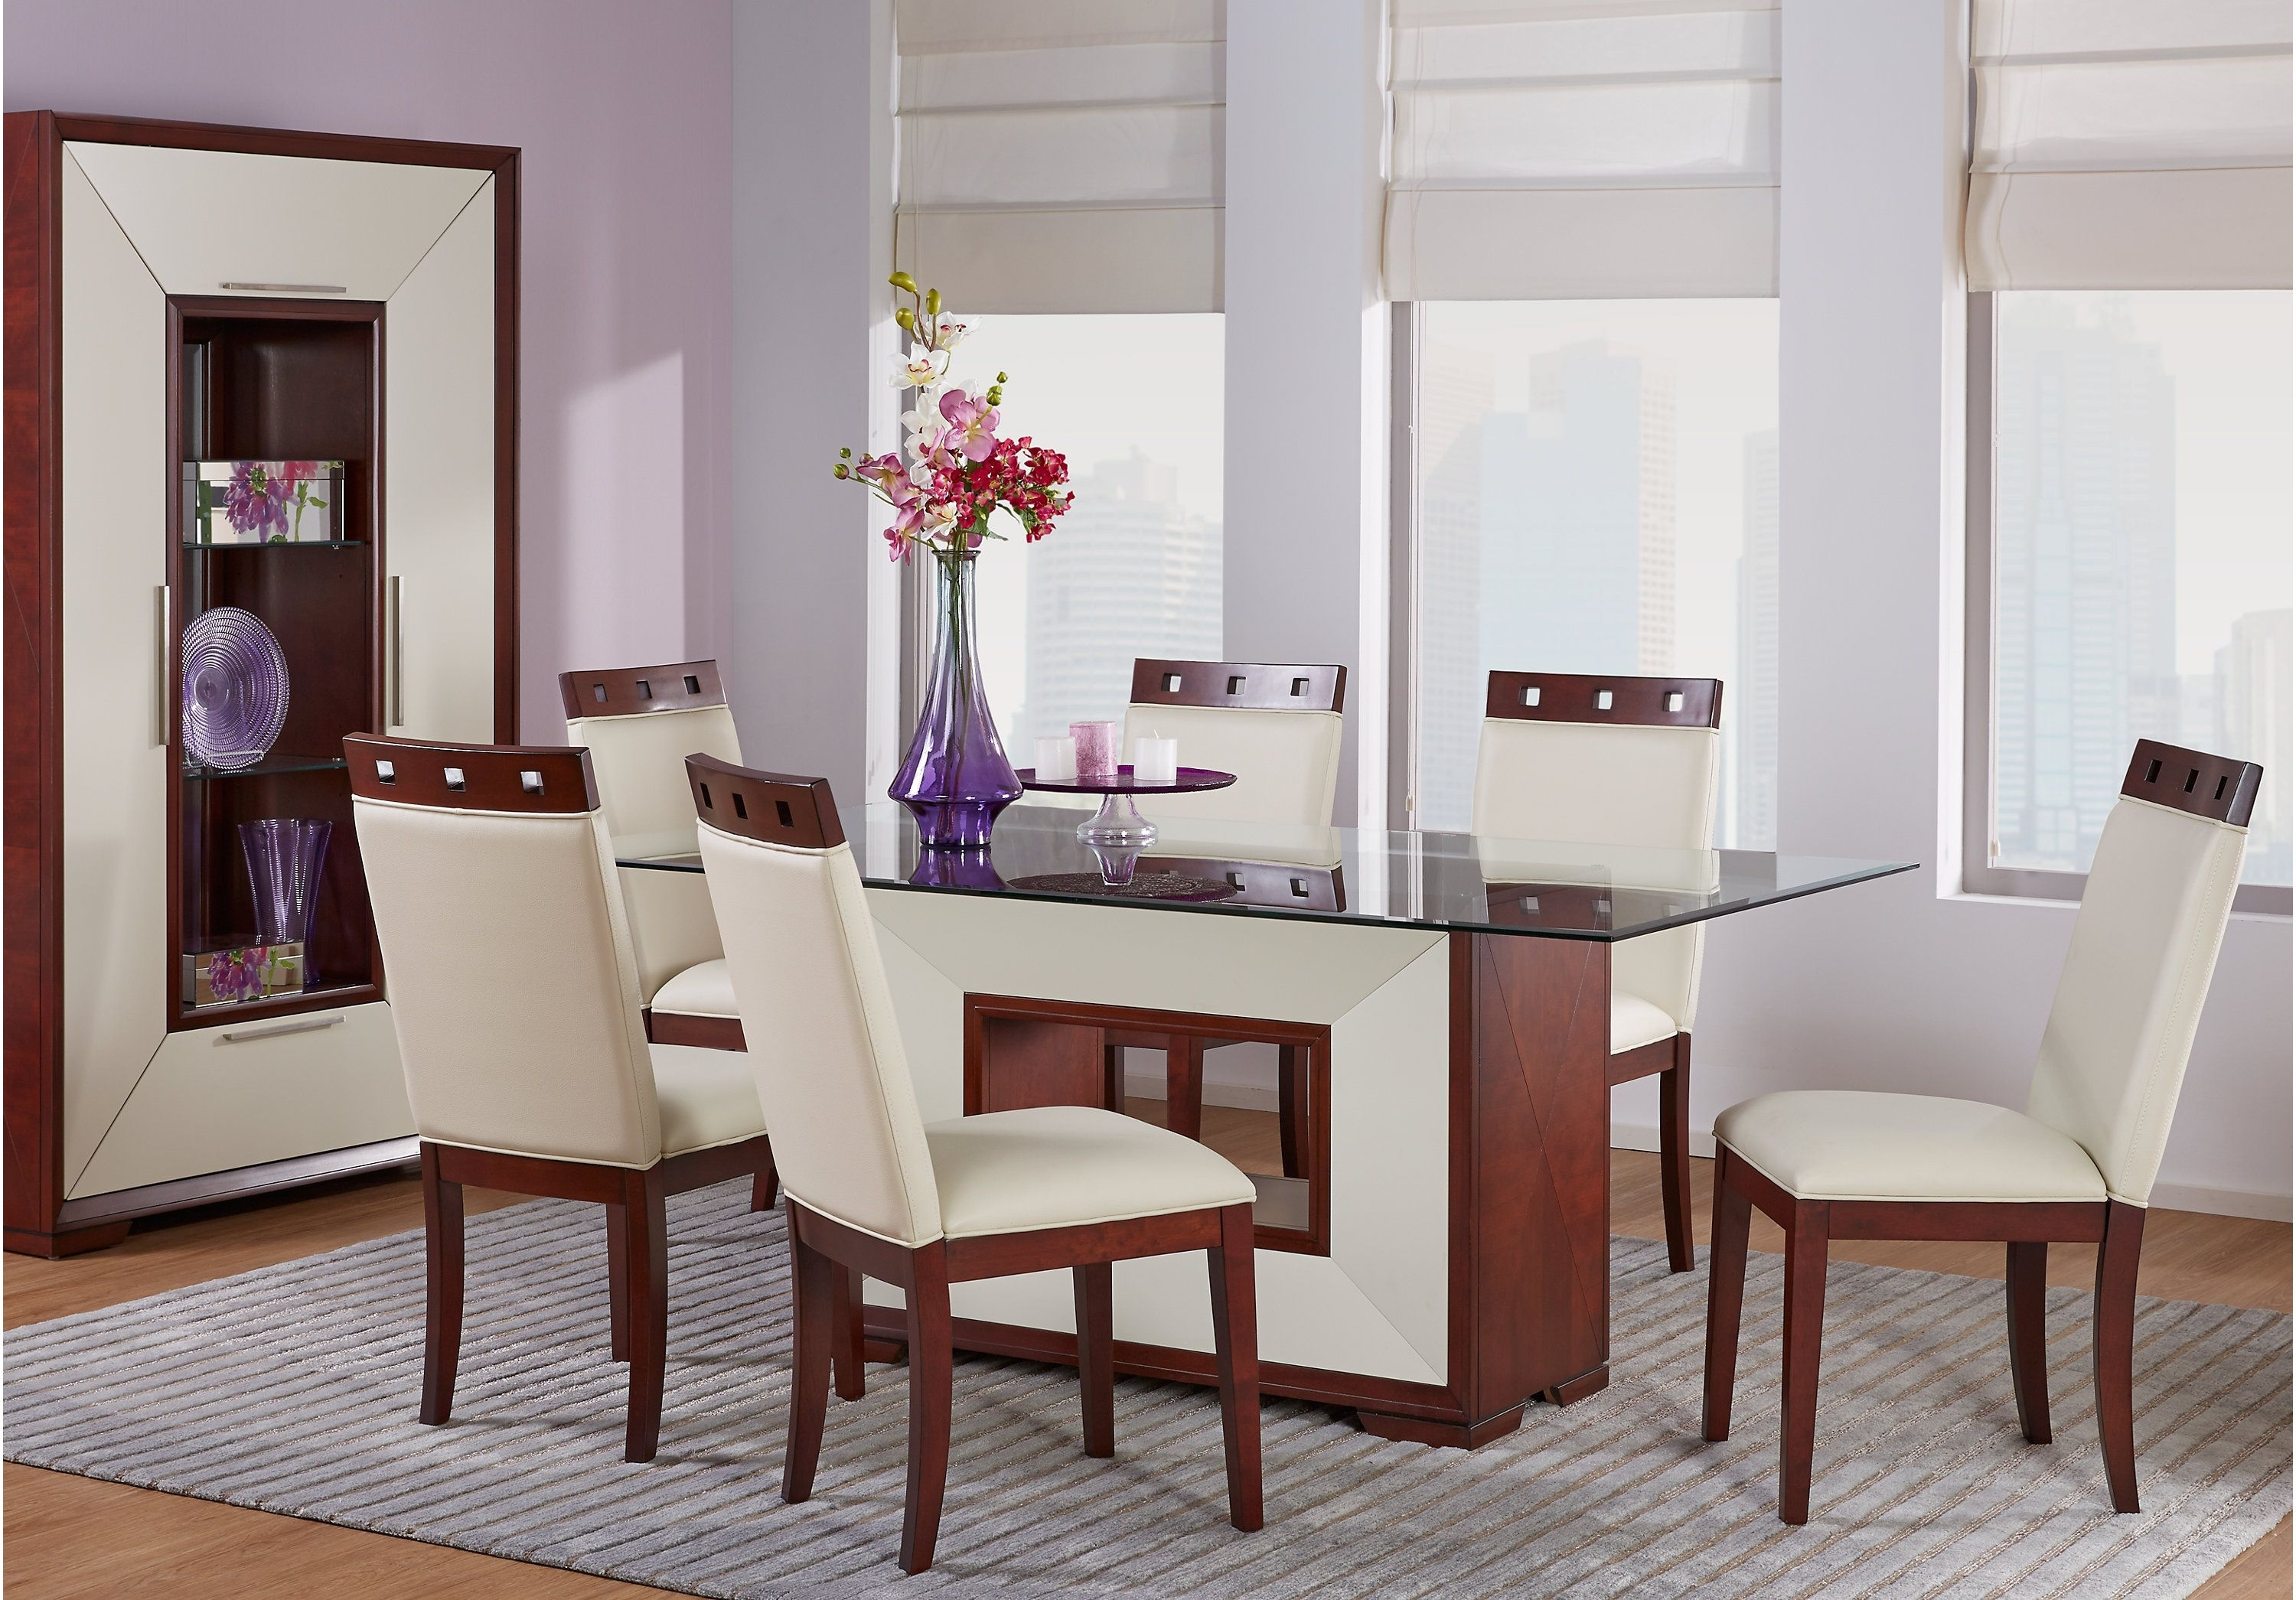 Sofia Vergara Savona Ivory 5 Pc Rectangle Dining Room With Glass Top With Regard To Well Known Palazzo 7 Piece Dining Sets With Pearson Grey Side Chairs (View 23 of 25)